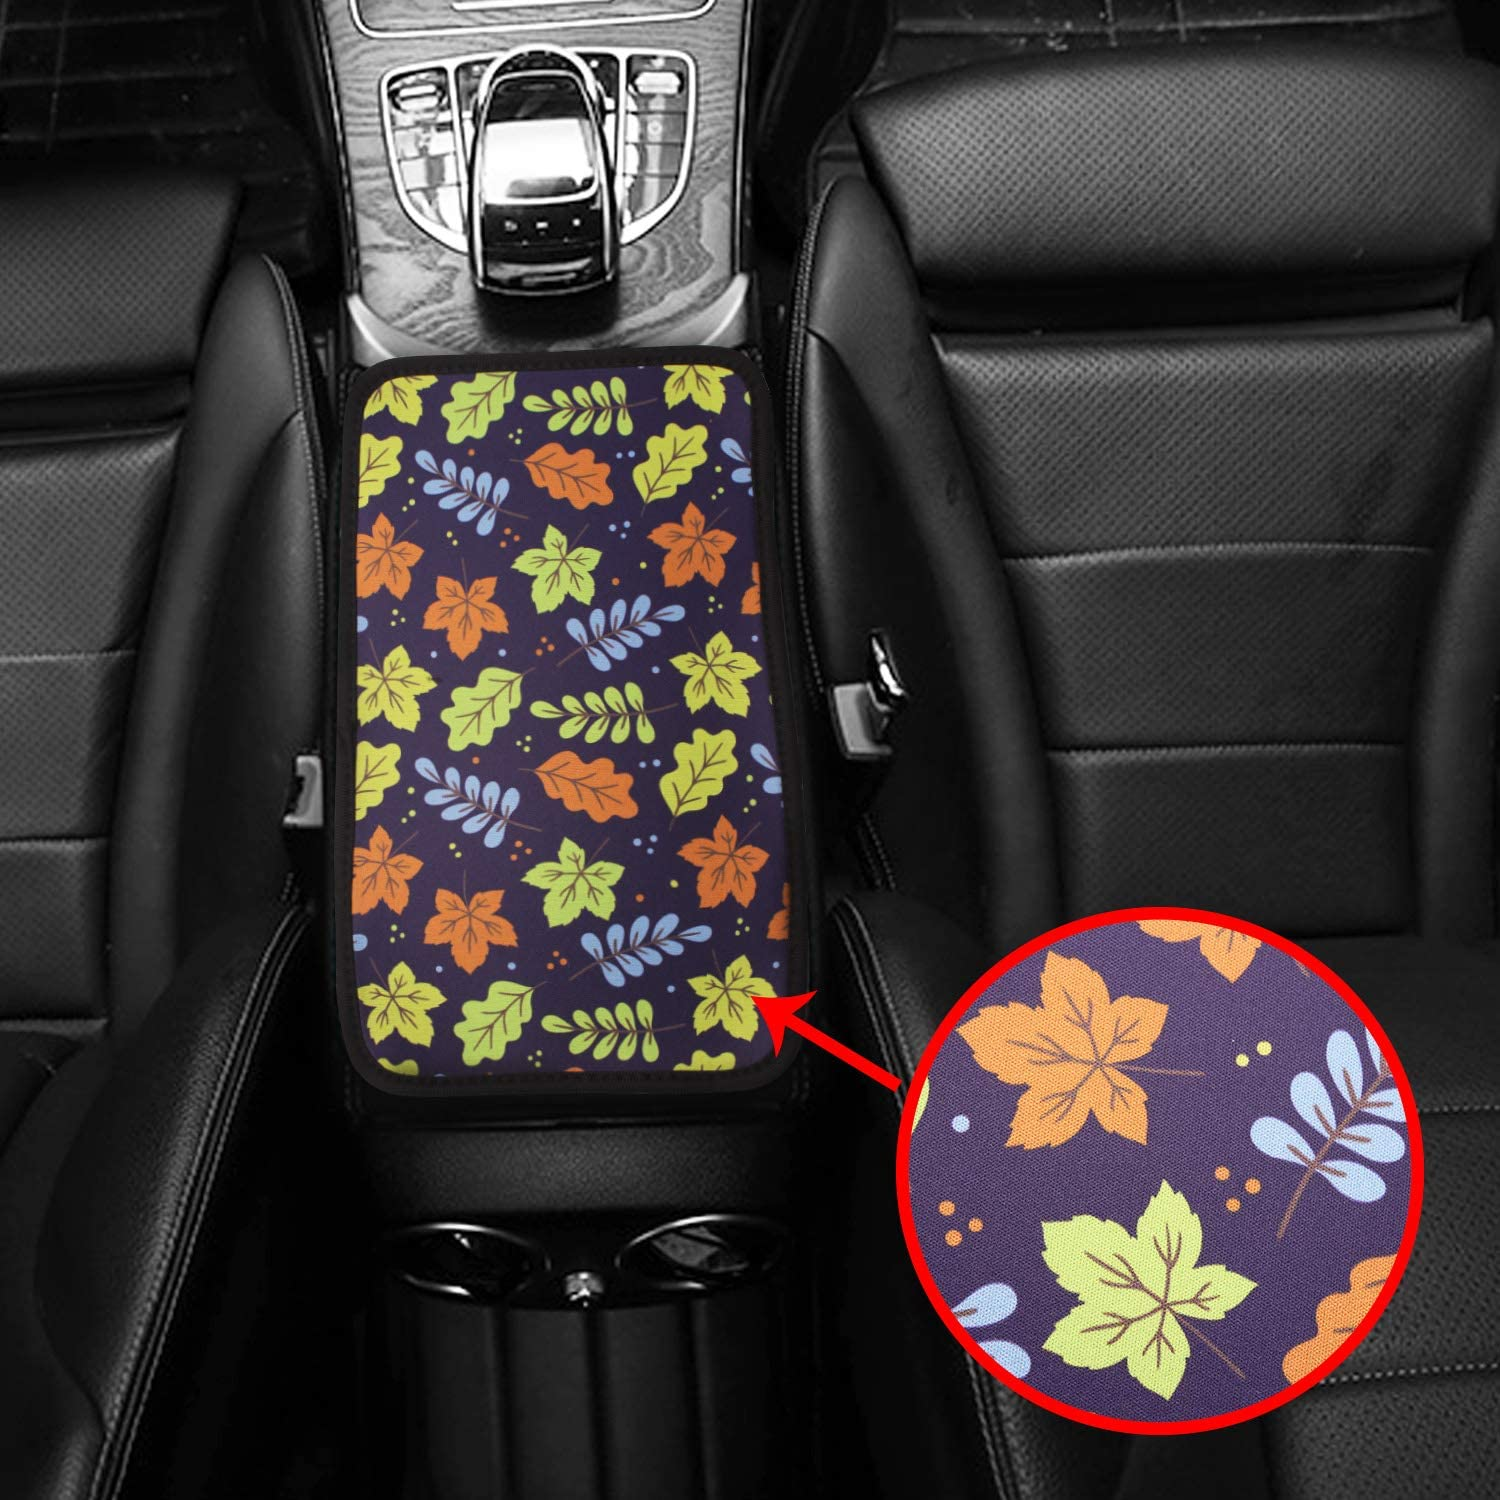 Truck Car Accessories Monrand Center Console Armrest Pad 02 Soft Cotton Universal Car Armrest Cover Fit for Most Vehicle SUV